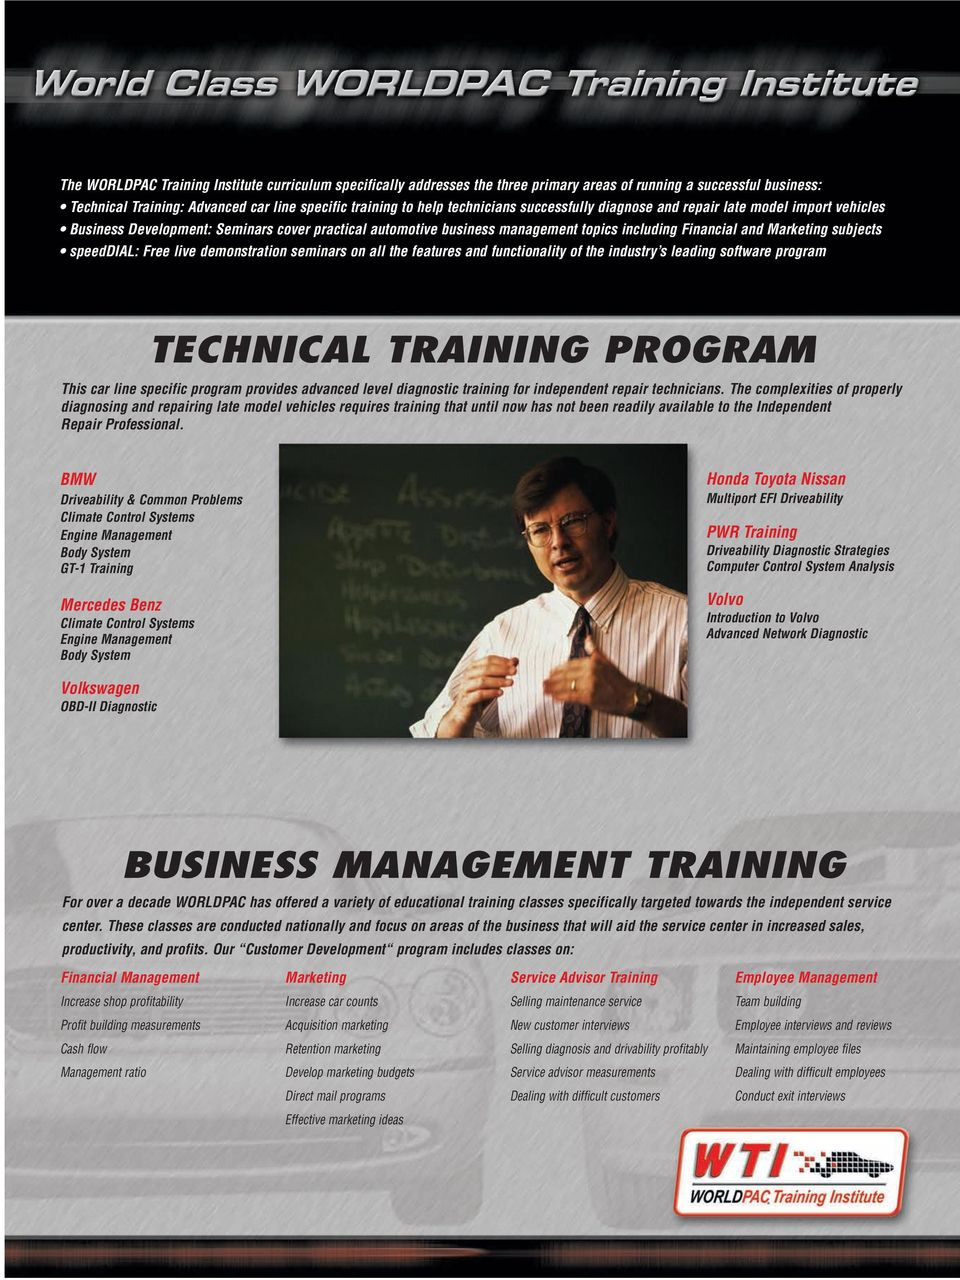 Free live demonstration seminars on all the features and functionality of the industry s leading software program TECHNICAL TRAINING PROGRAM This car line specific program provides advanced level